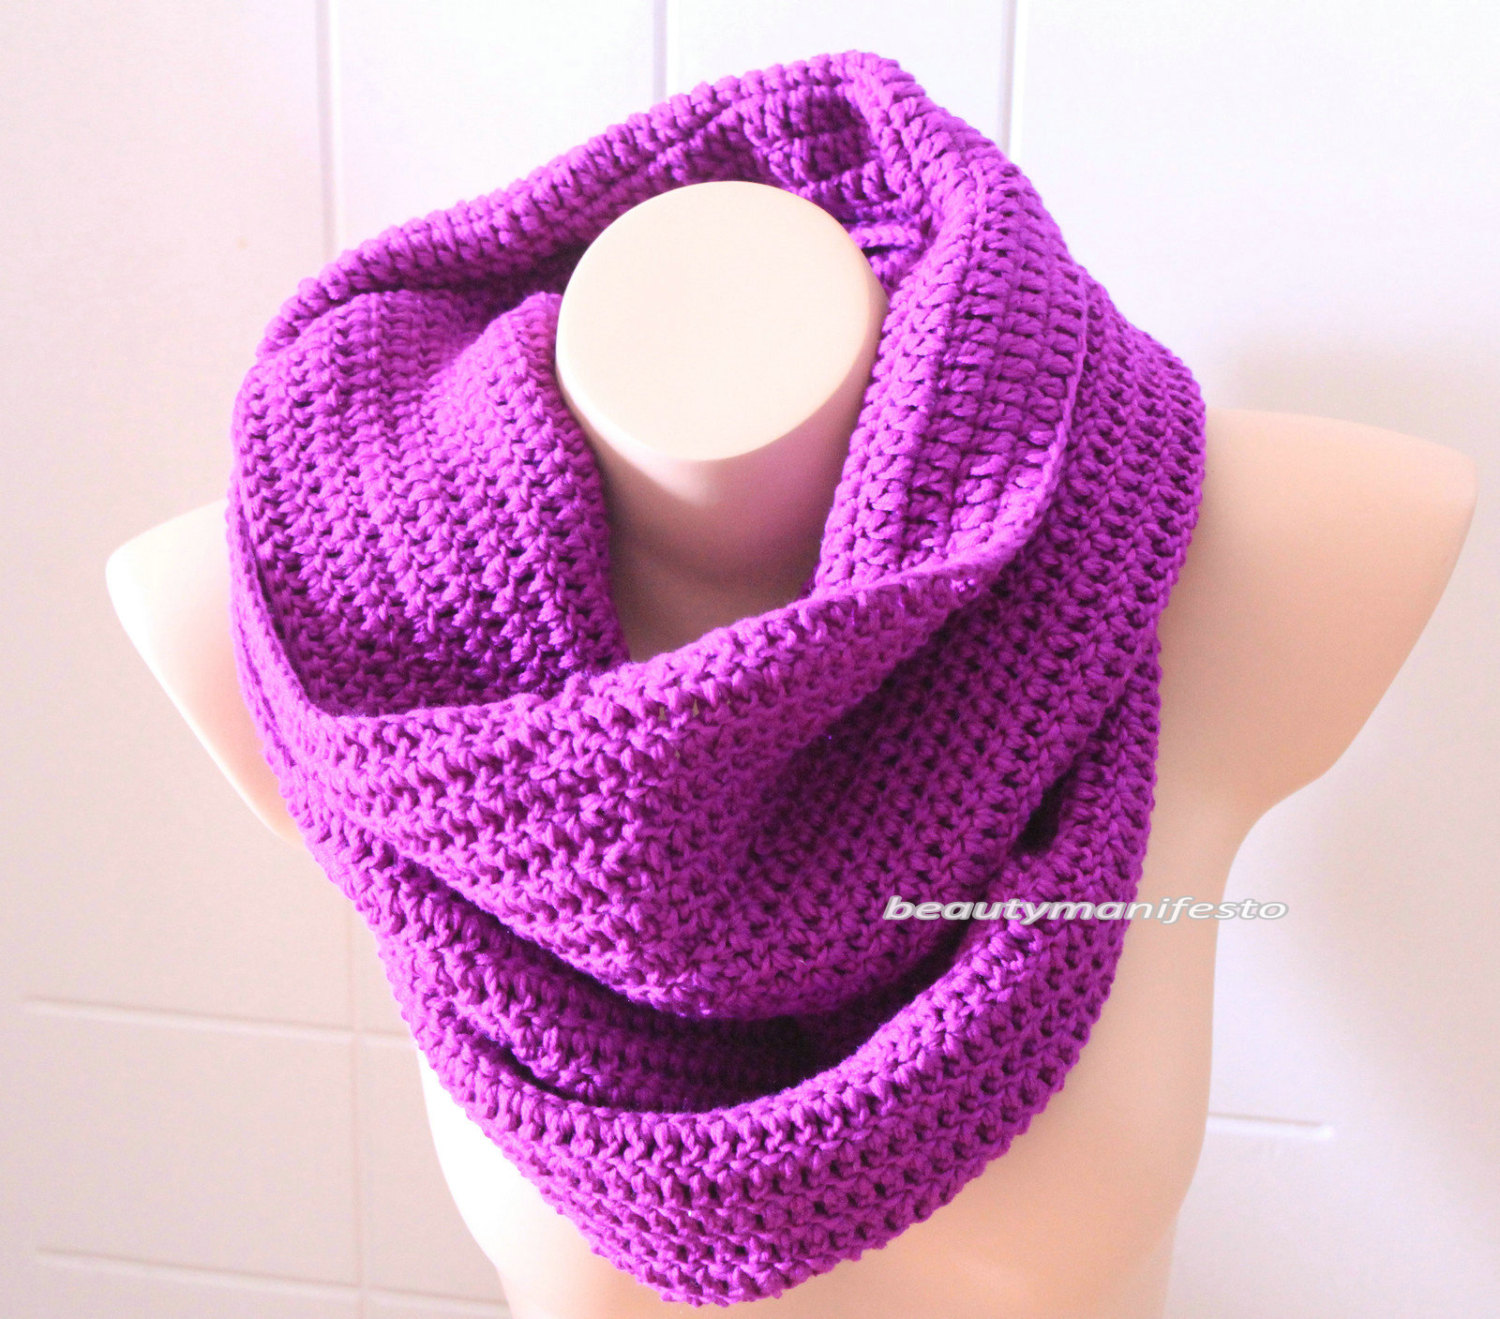 Oversized knit scarf,oversized chunky infinity scarf in purple color,crochet infinity scarves,free shipping